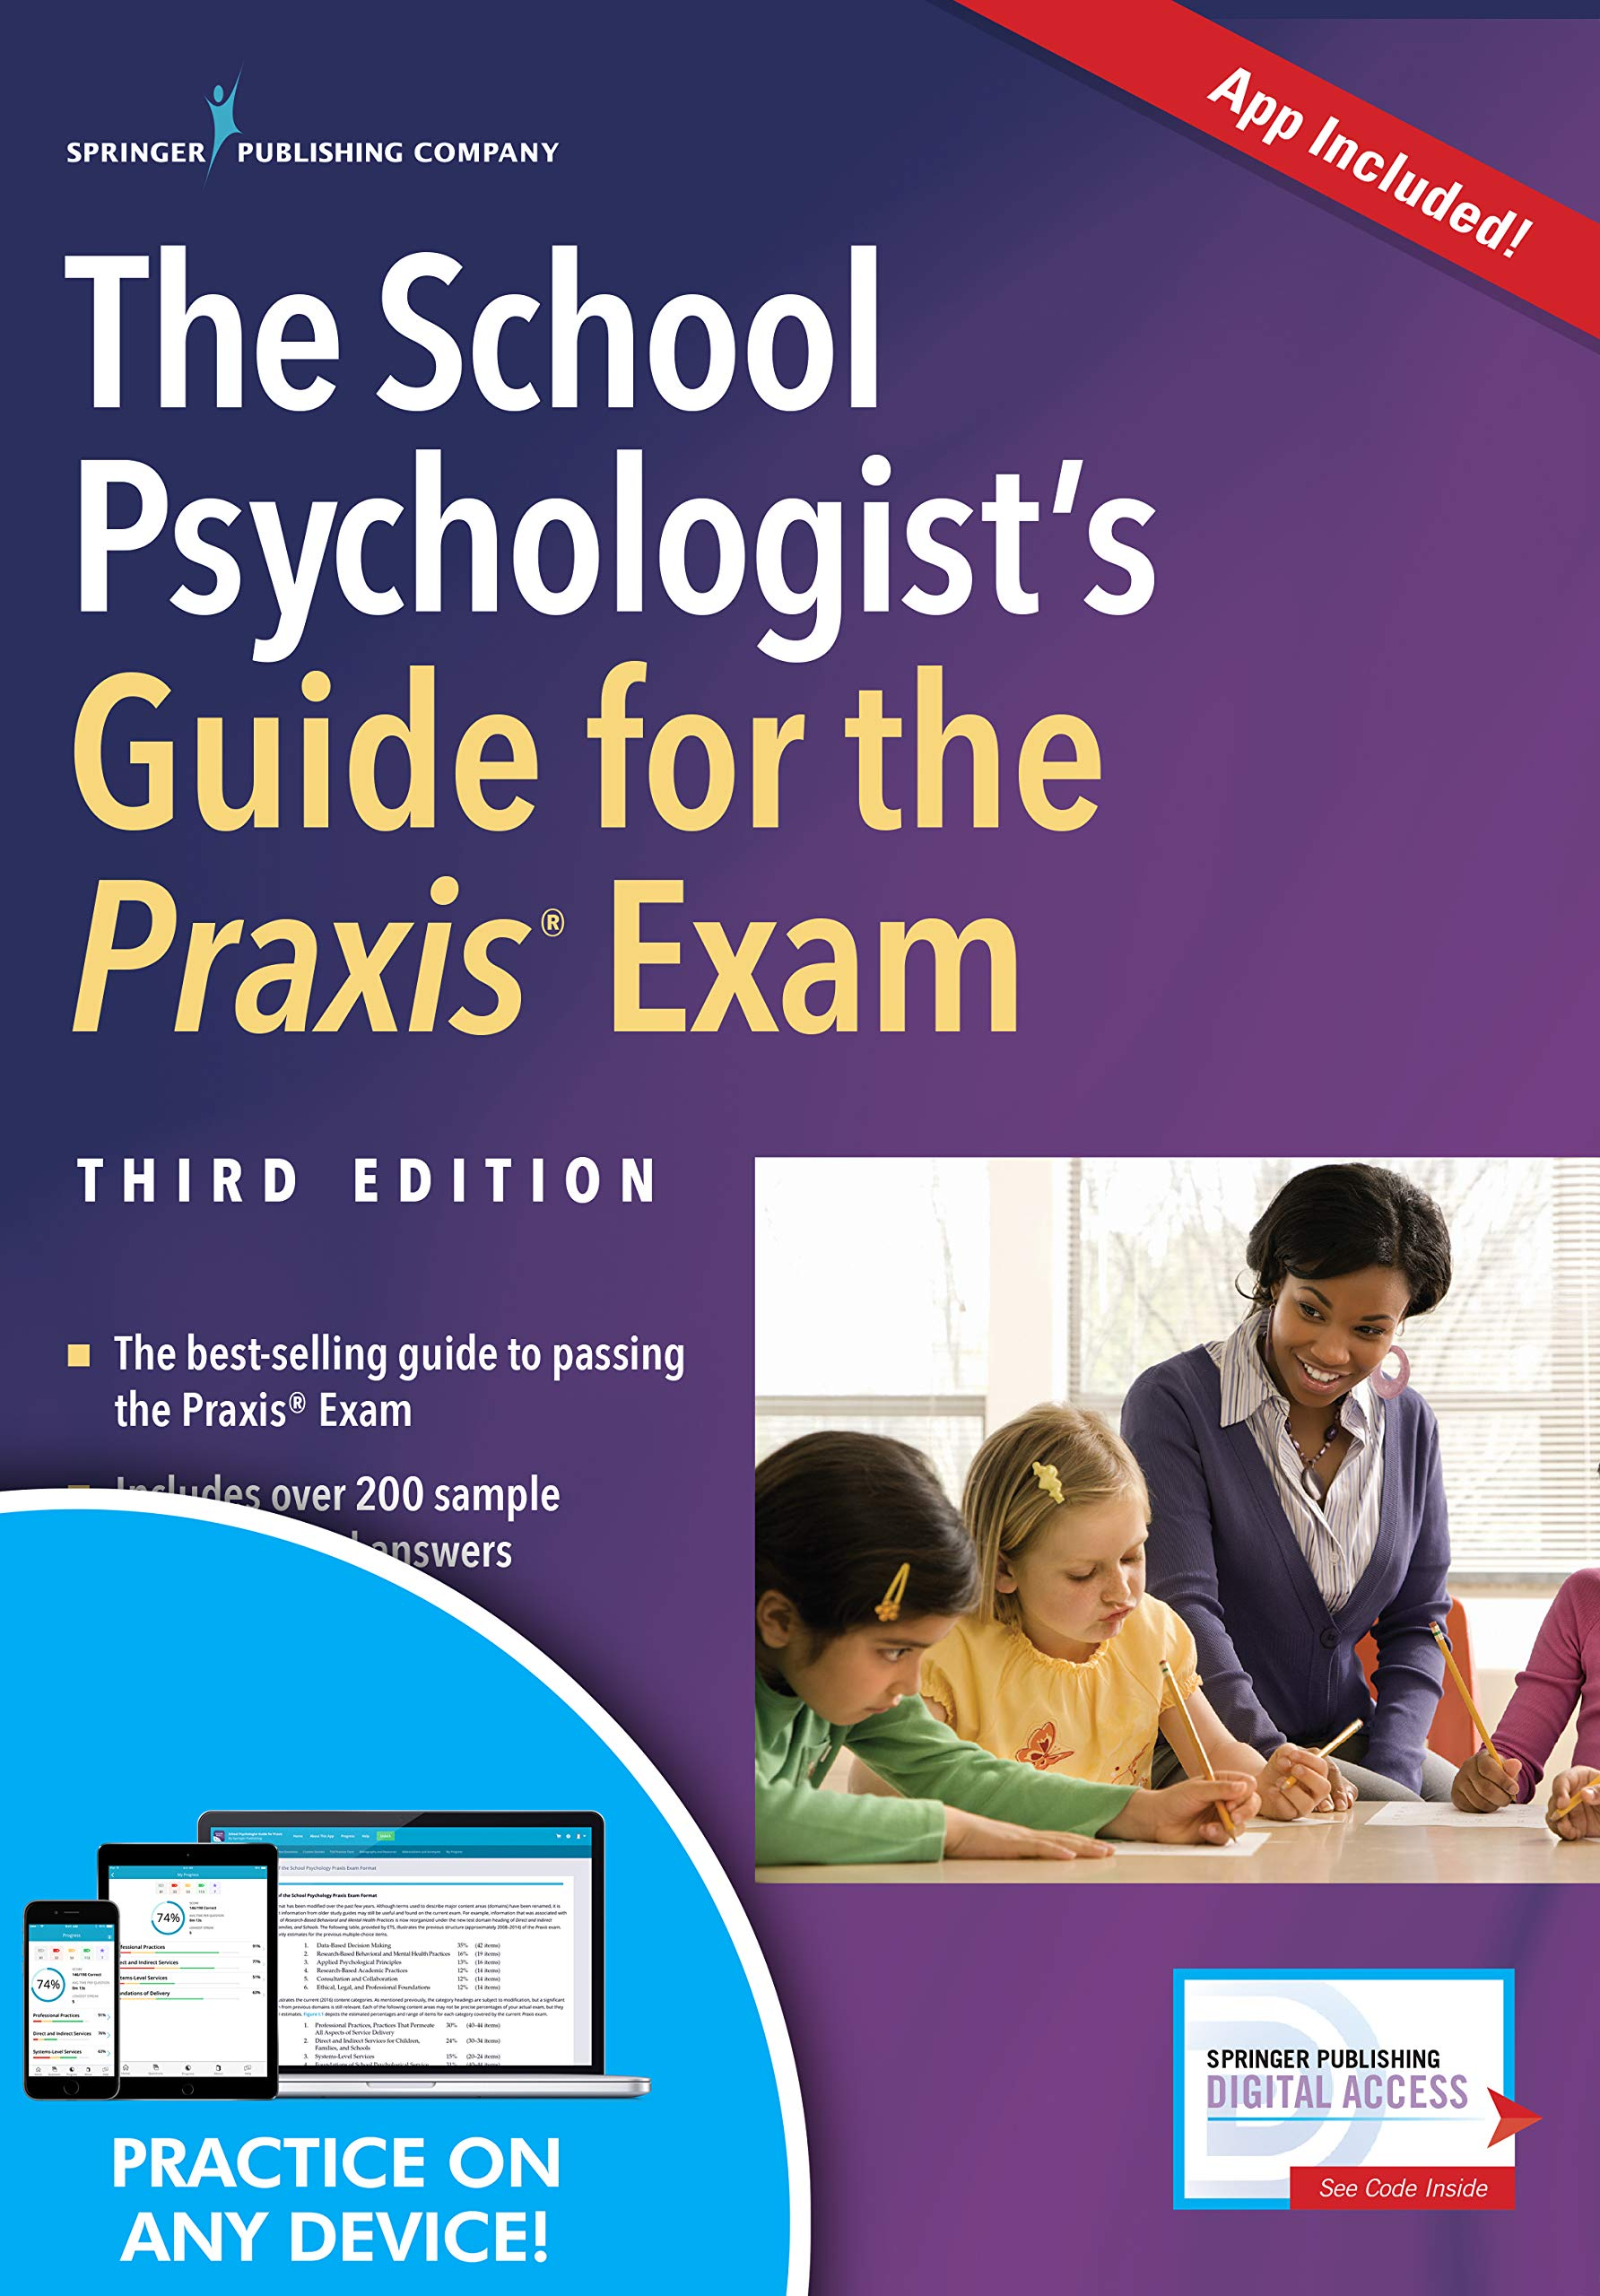 The School Psychologist's Guide for the Praxis Exam, Third